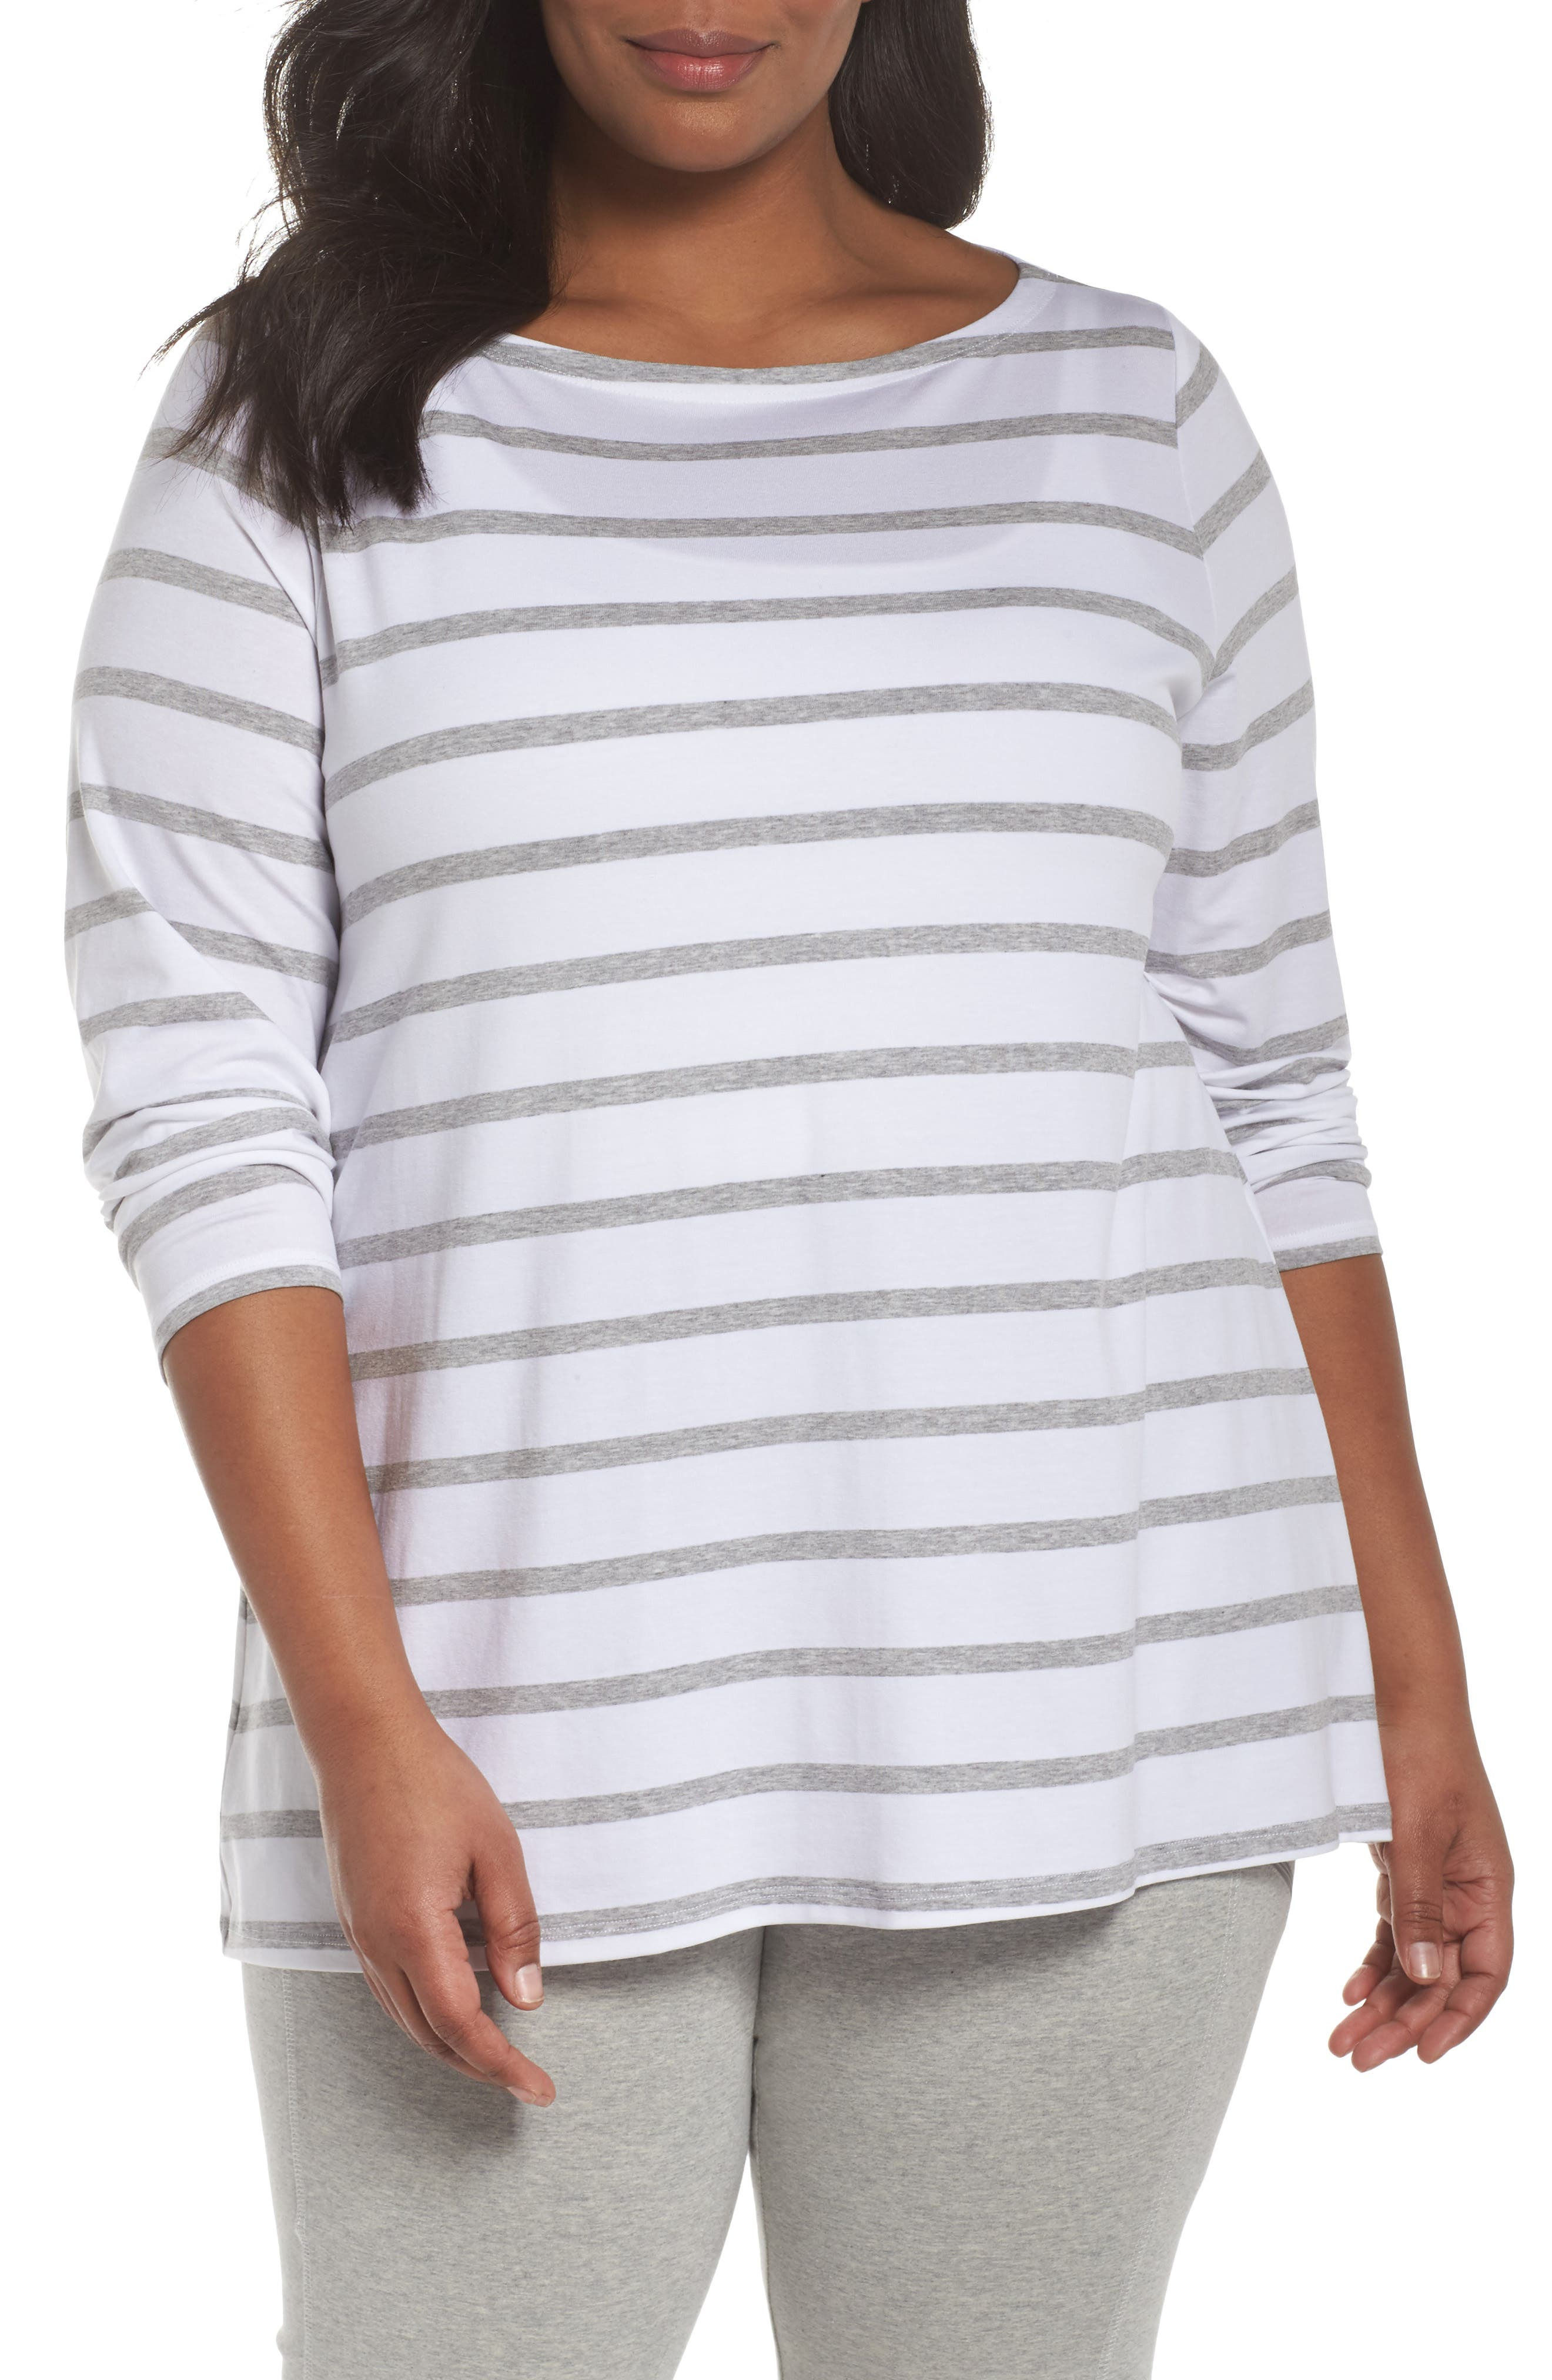 Stripe Stretch Tencel<sup>®</sup> Lyocell Top,                         Main,                         color, White/ Dark Pearl